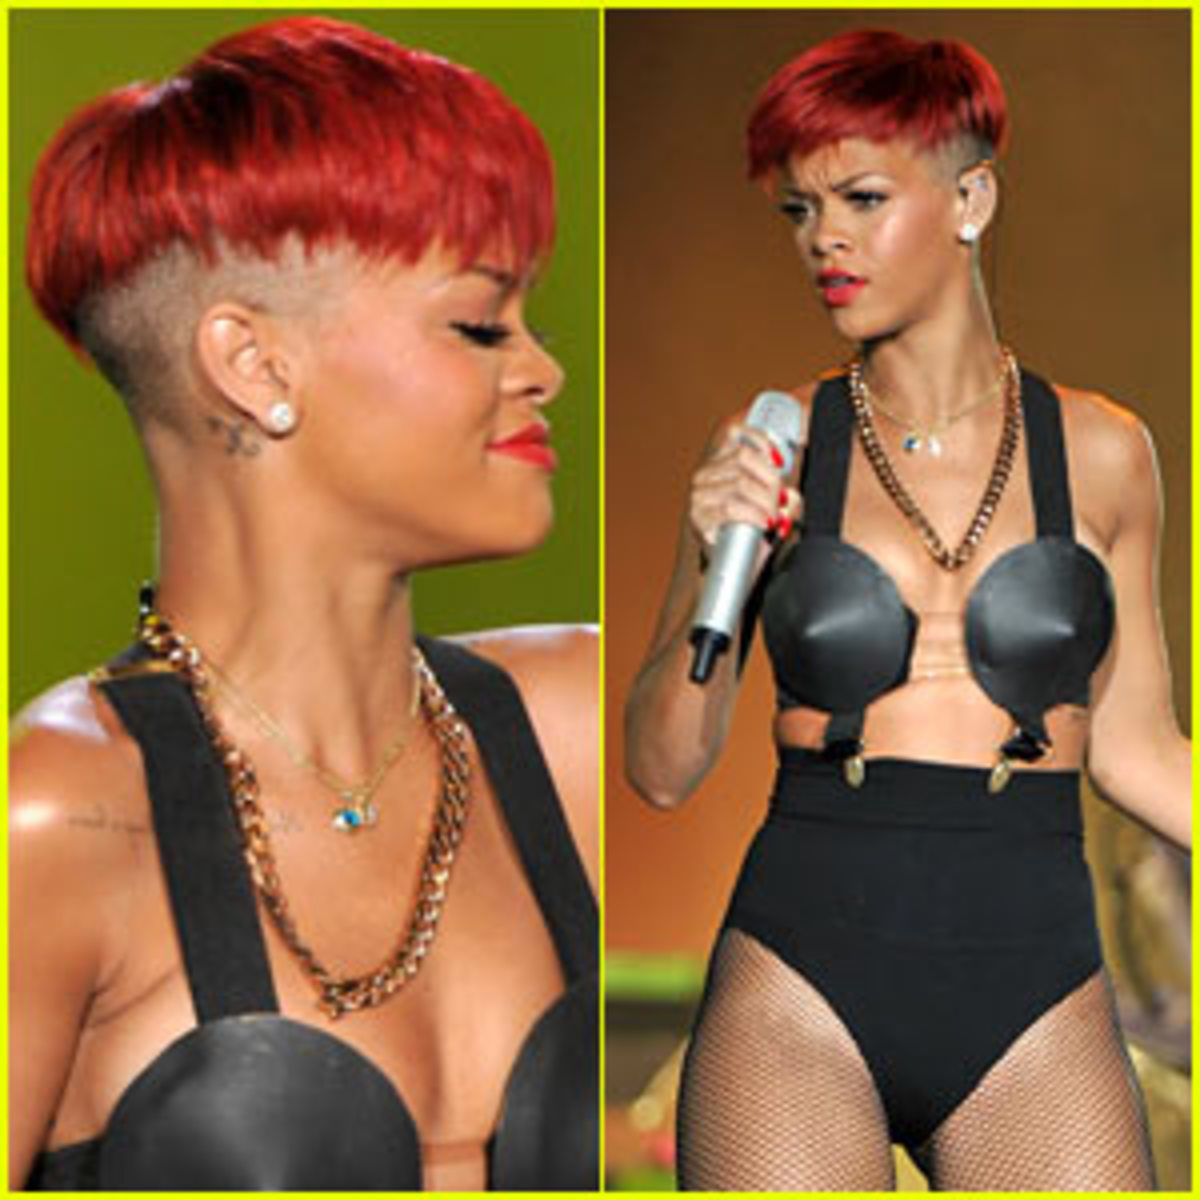 Here's Ri-Ri after the Chris Brown Drama wow. She re-emerged onto the scene with shaved sides and fiery red hair.